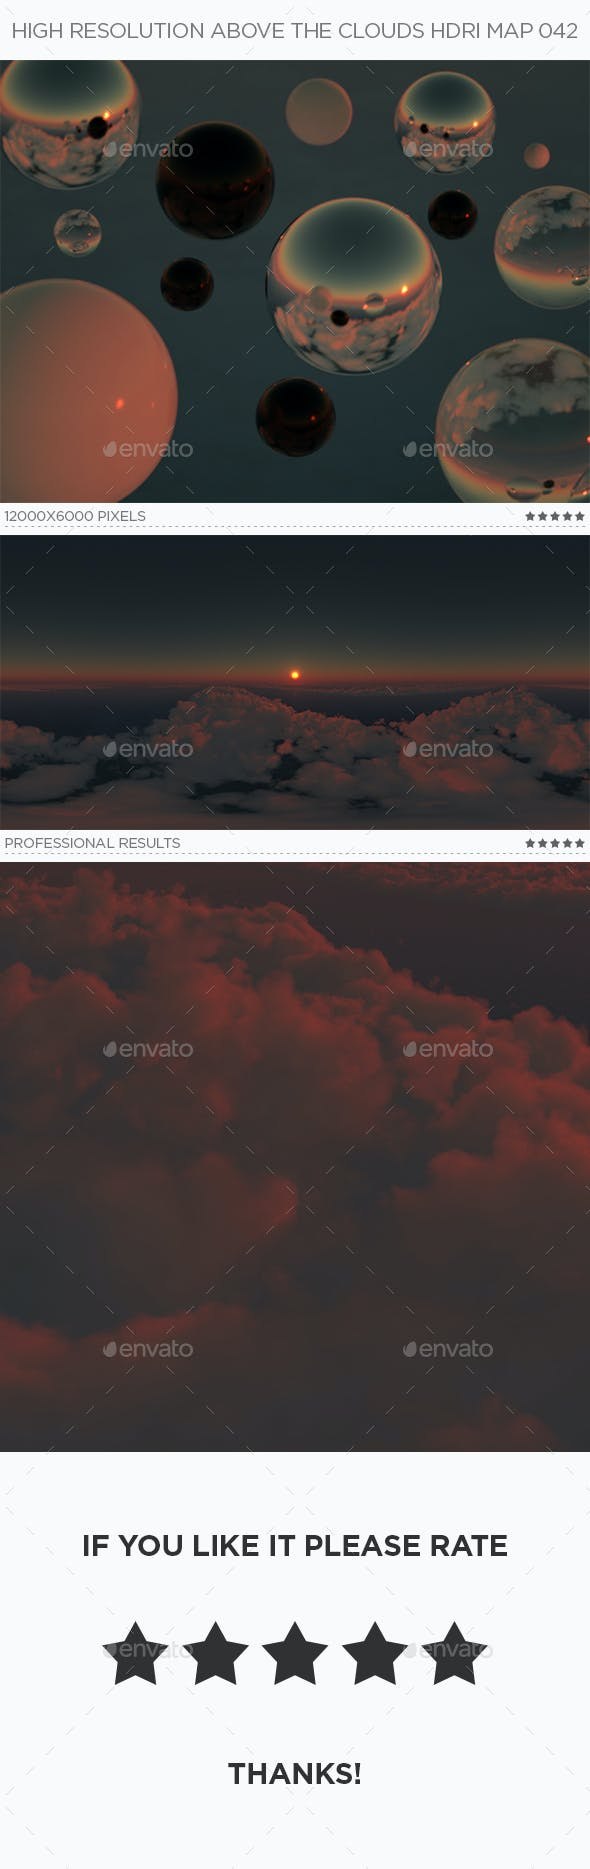 High Resolution Above The Clouds HDRi Map 042 - 3DOcean Item for Sale